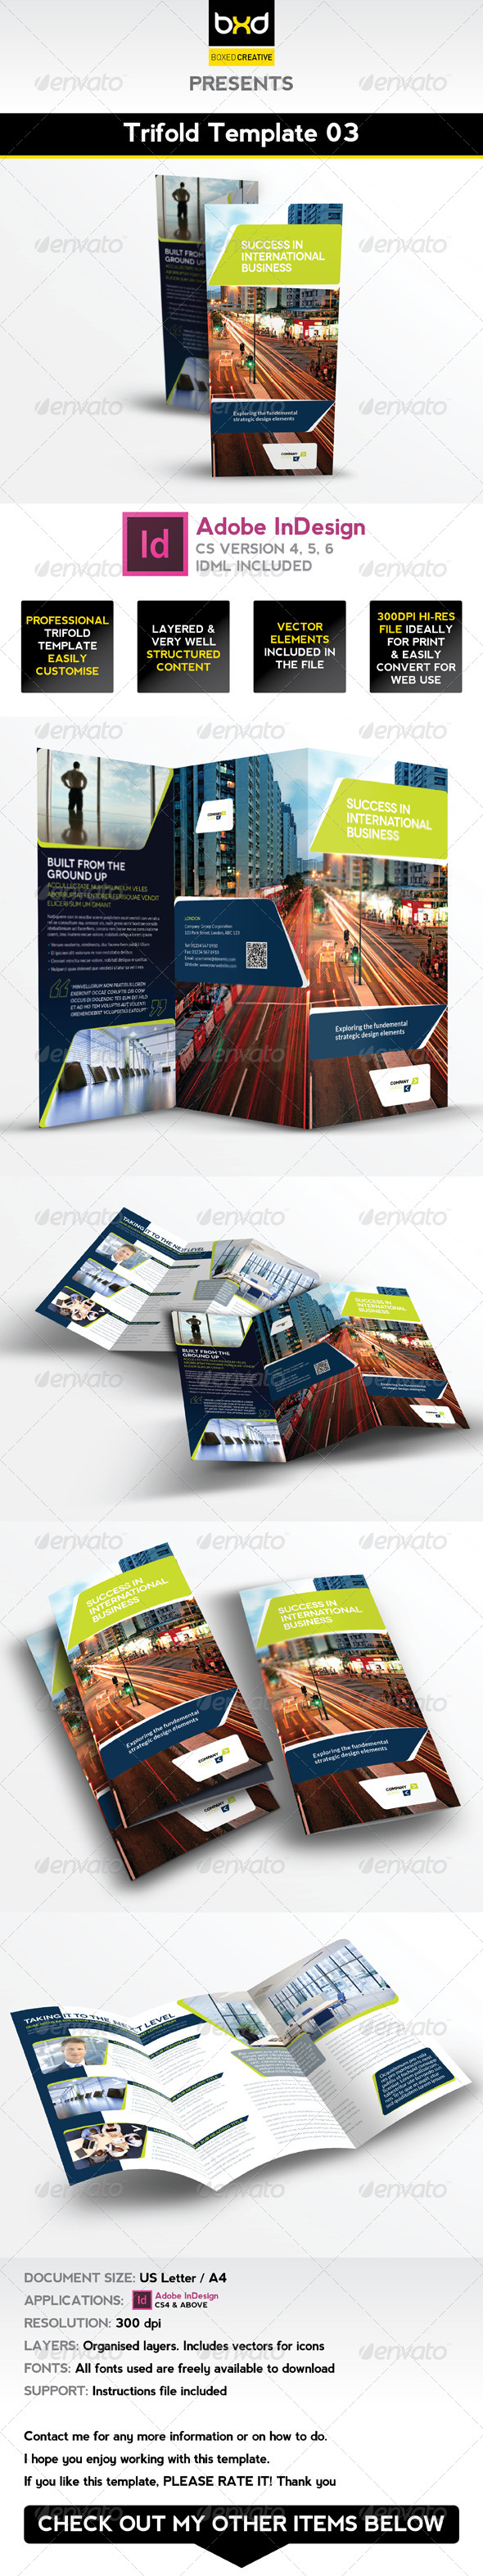 Trifold Brochure Template 03 InDesign Layout